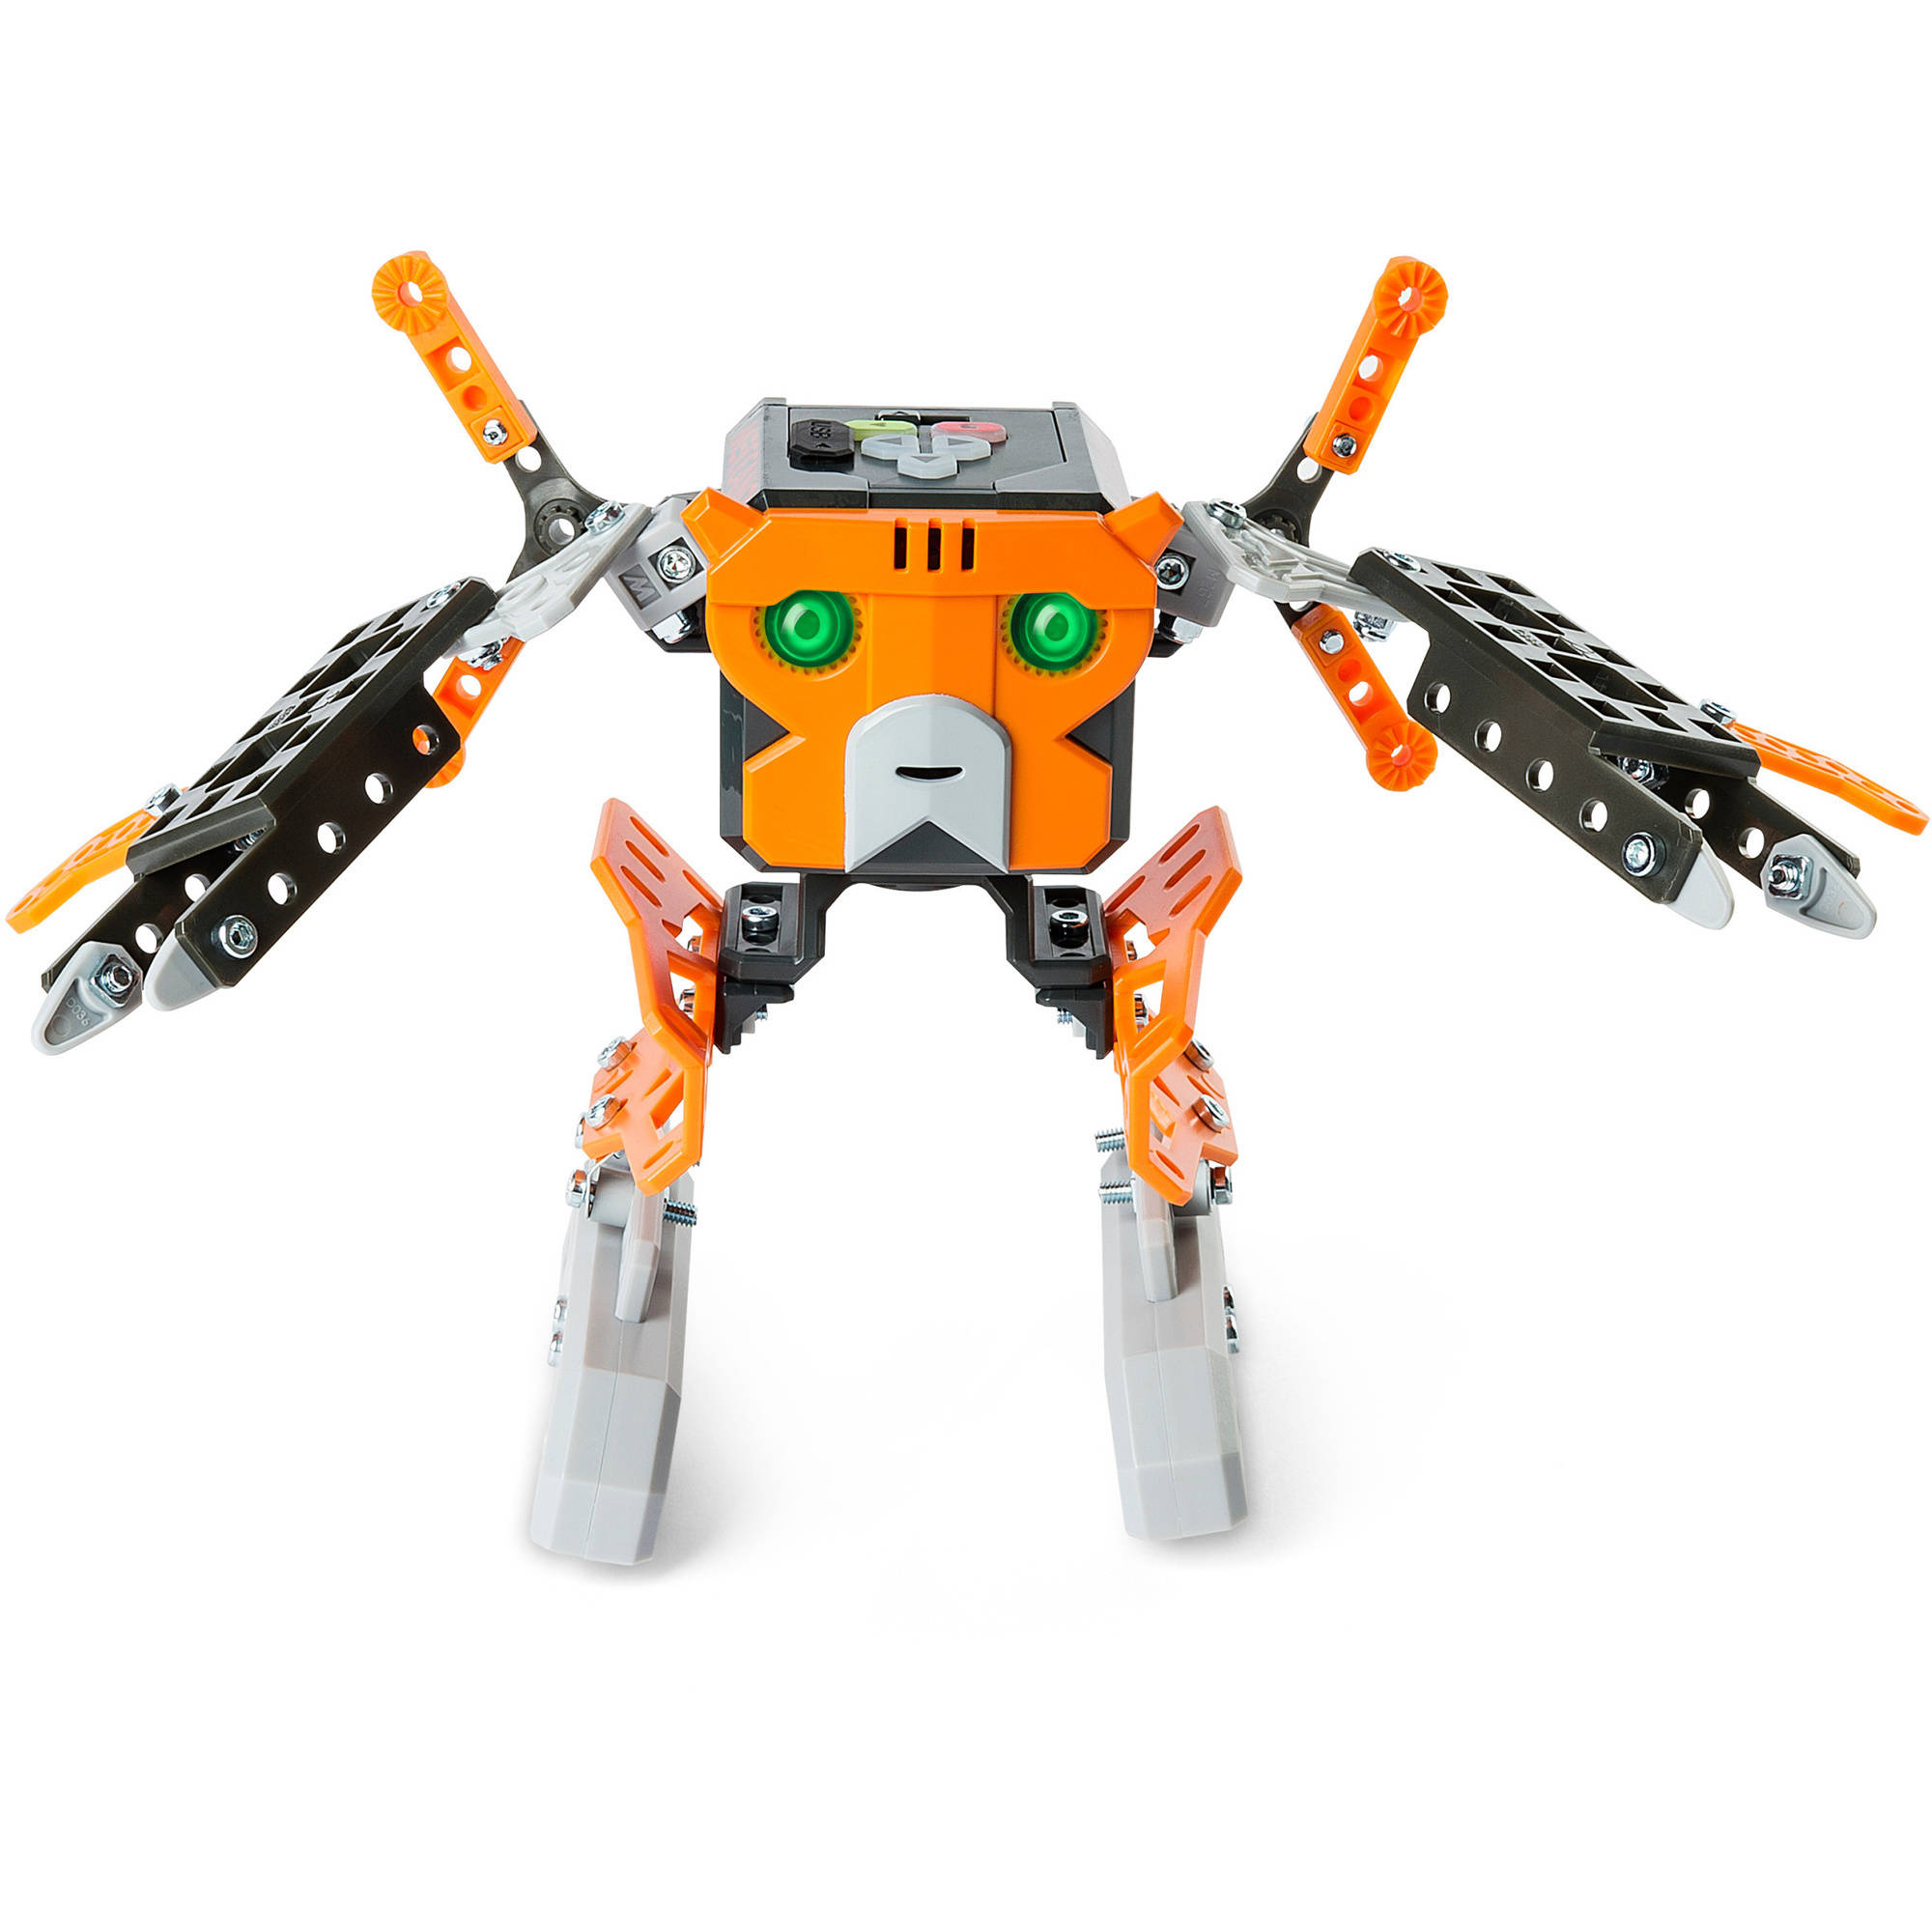 Meccano-Erector Micronoid Code A.C.E. Programmable Robot Building Kit by SPIN MASTER TOYS FAR EAST LIMITED